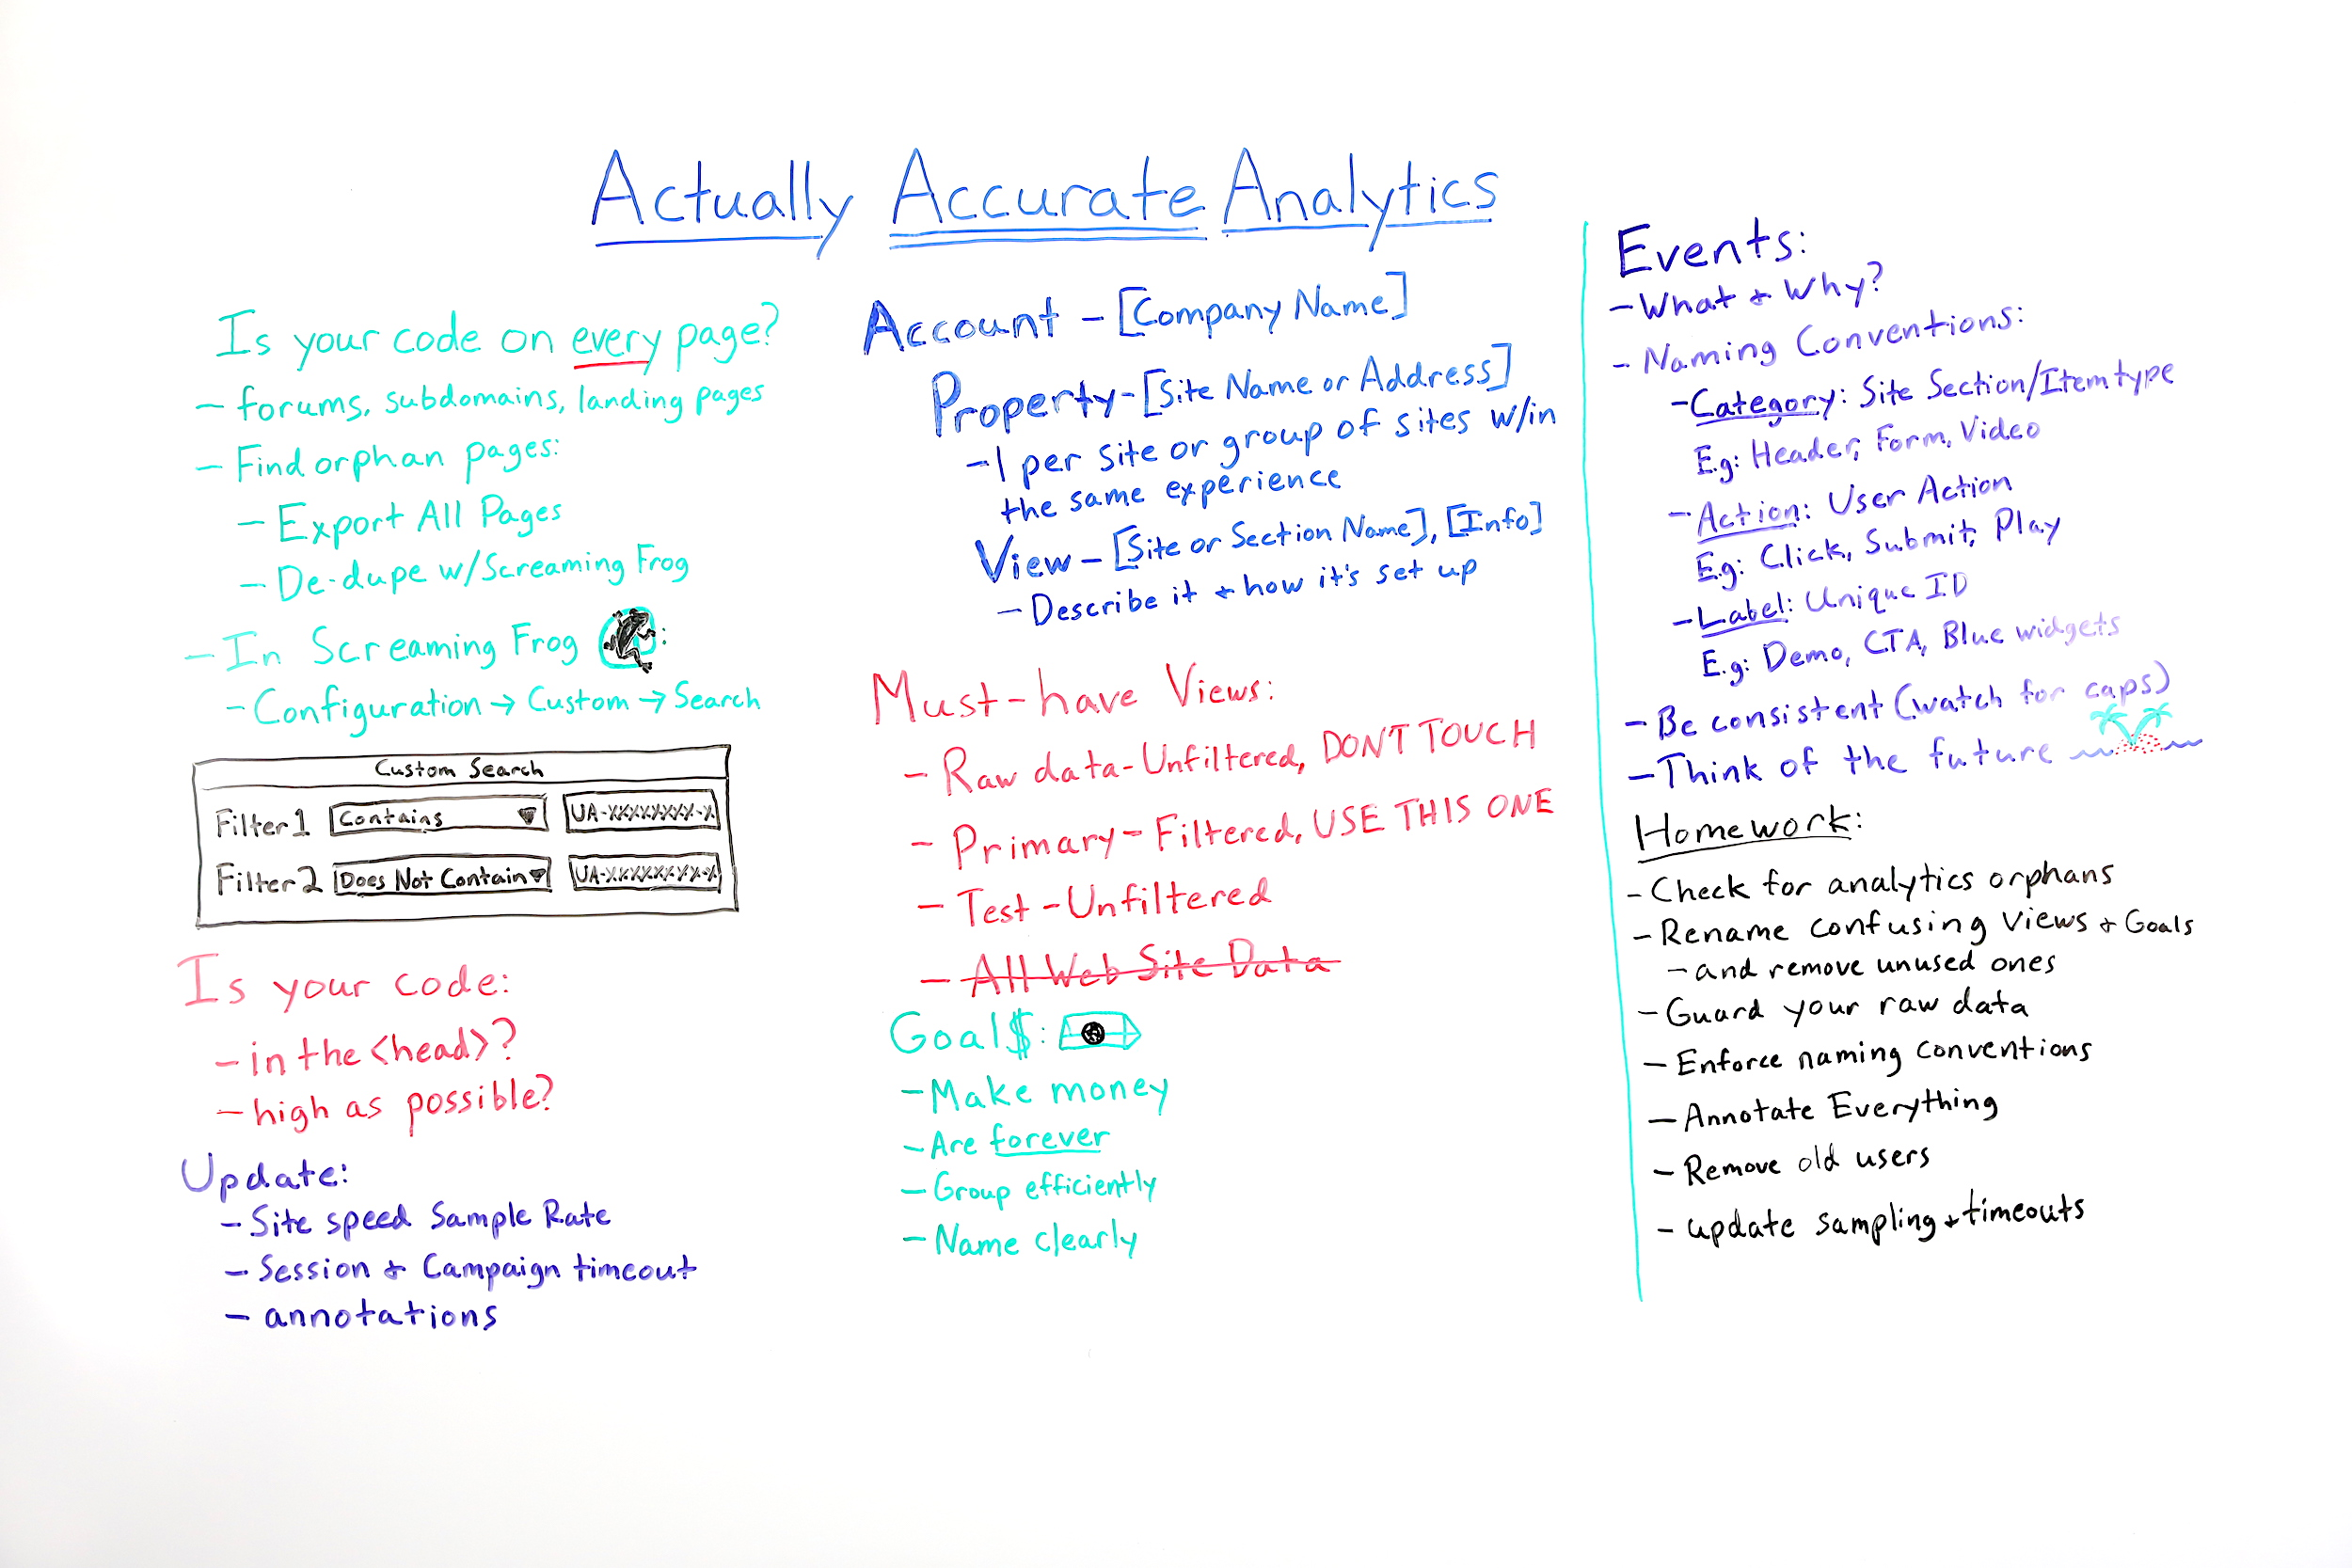 Actually Accurate Analytics Whiteboard Friday Internet